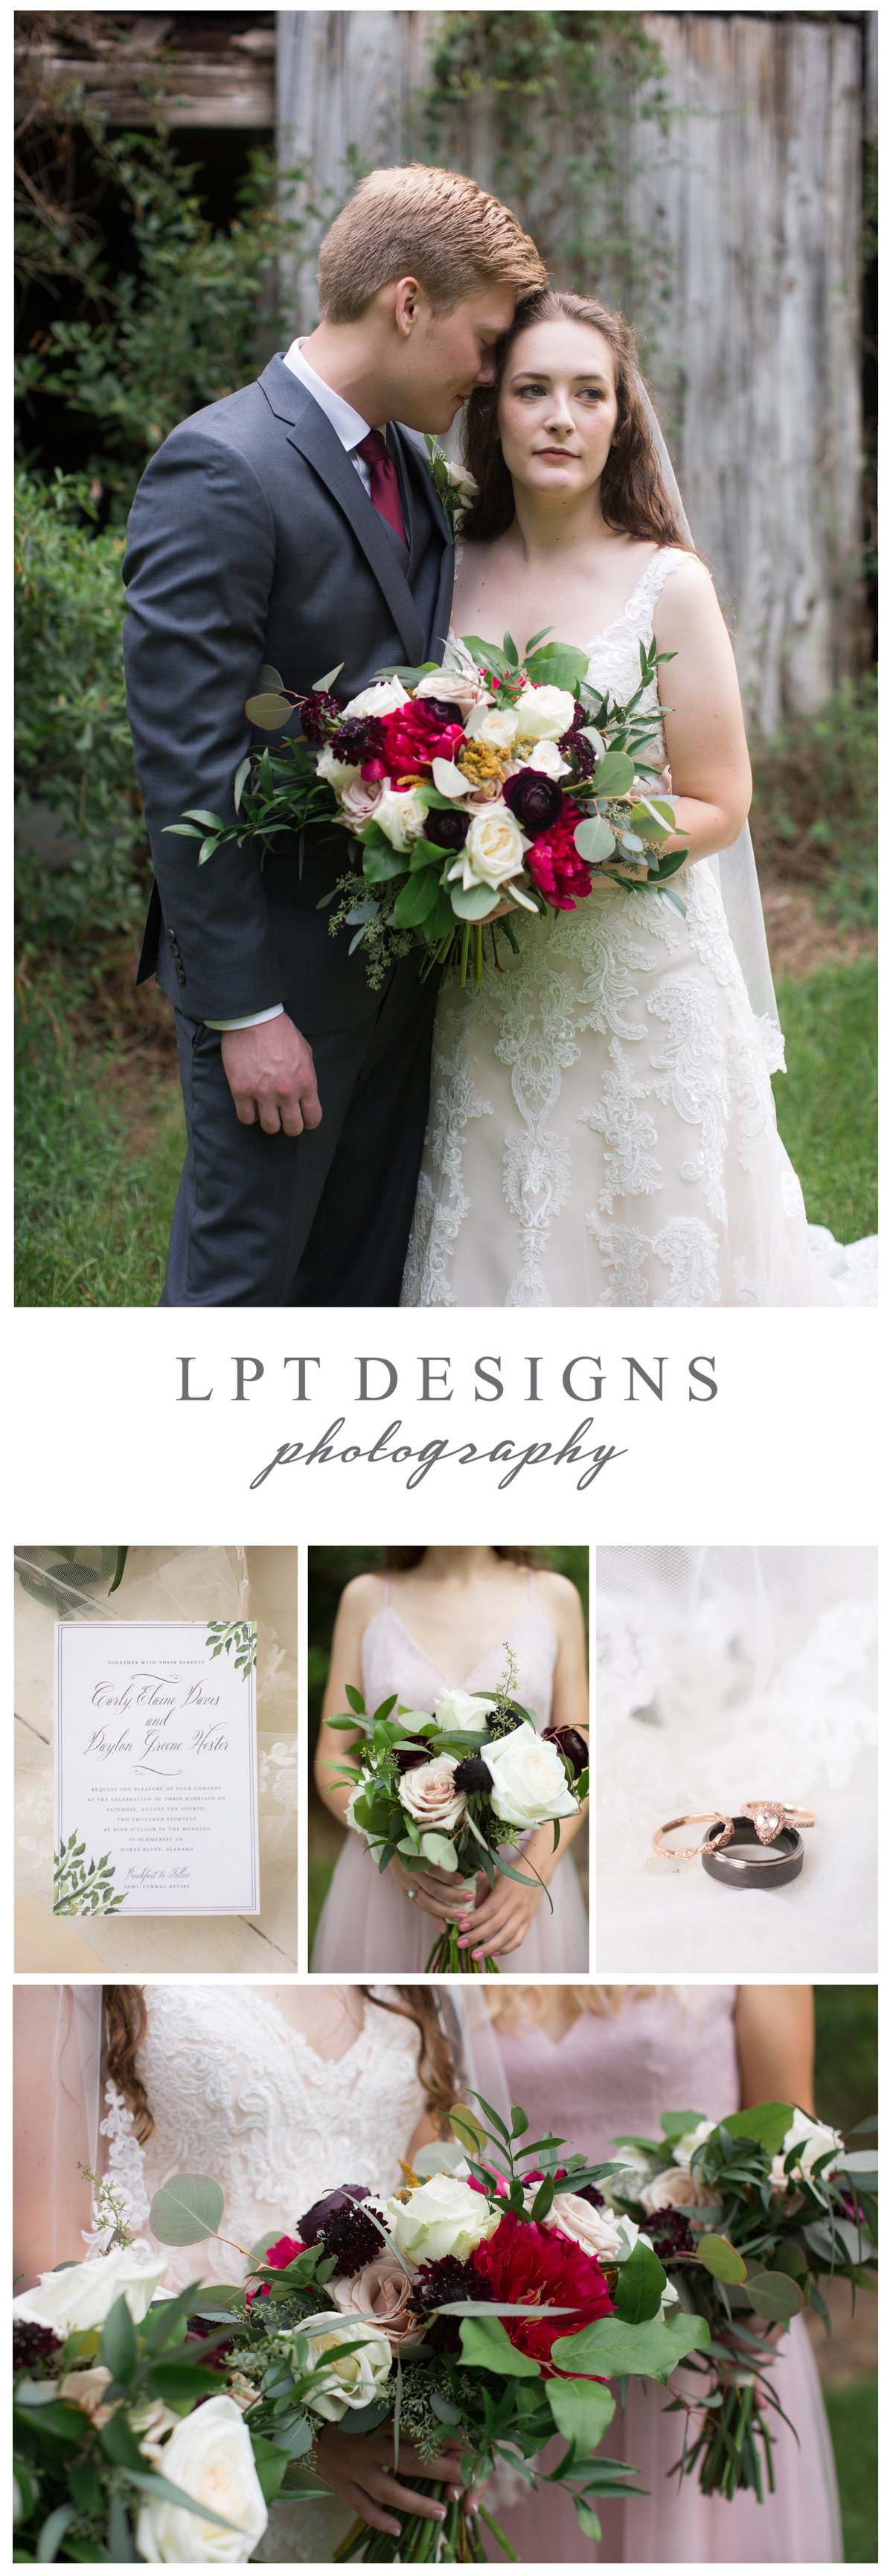 LPT Designs Photography Lydia Thrift Gadsden Alabama Fine Art Wedding Photographer CD 1